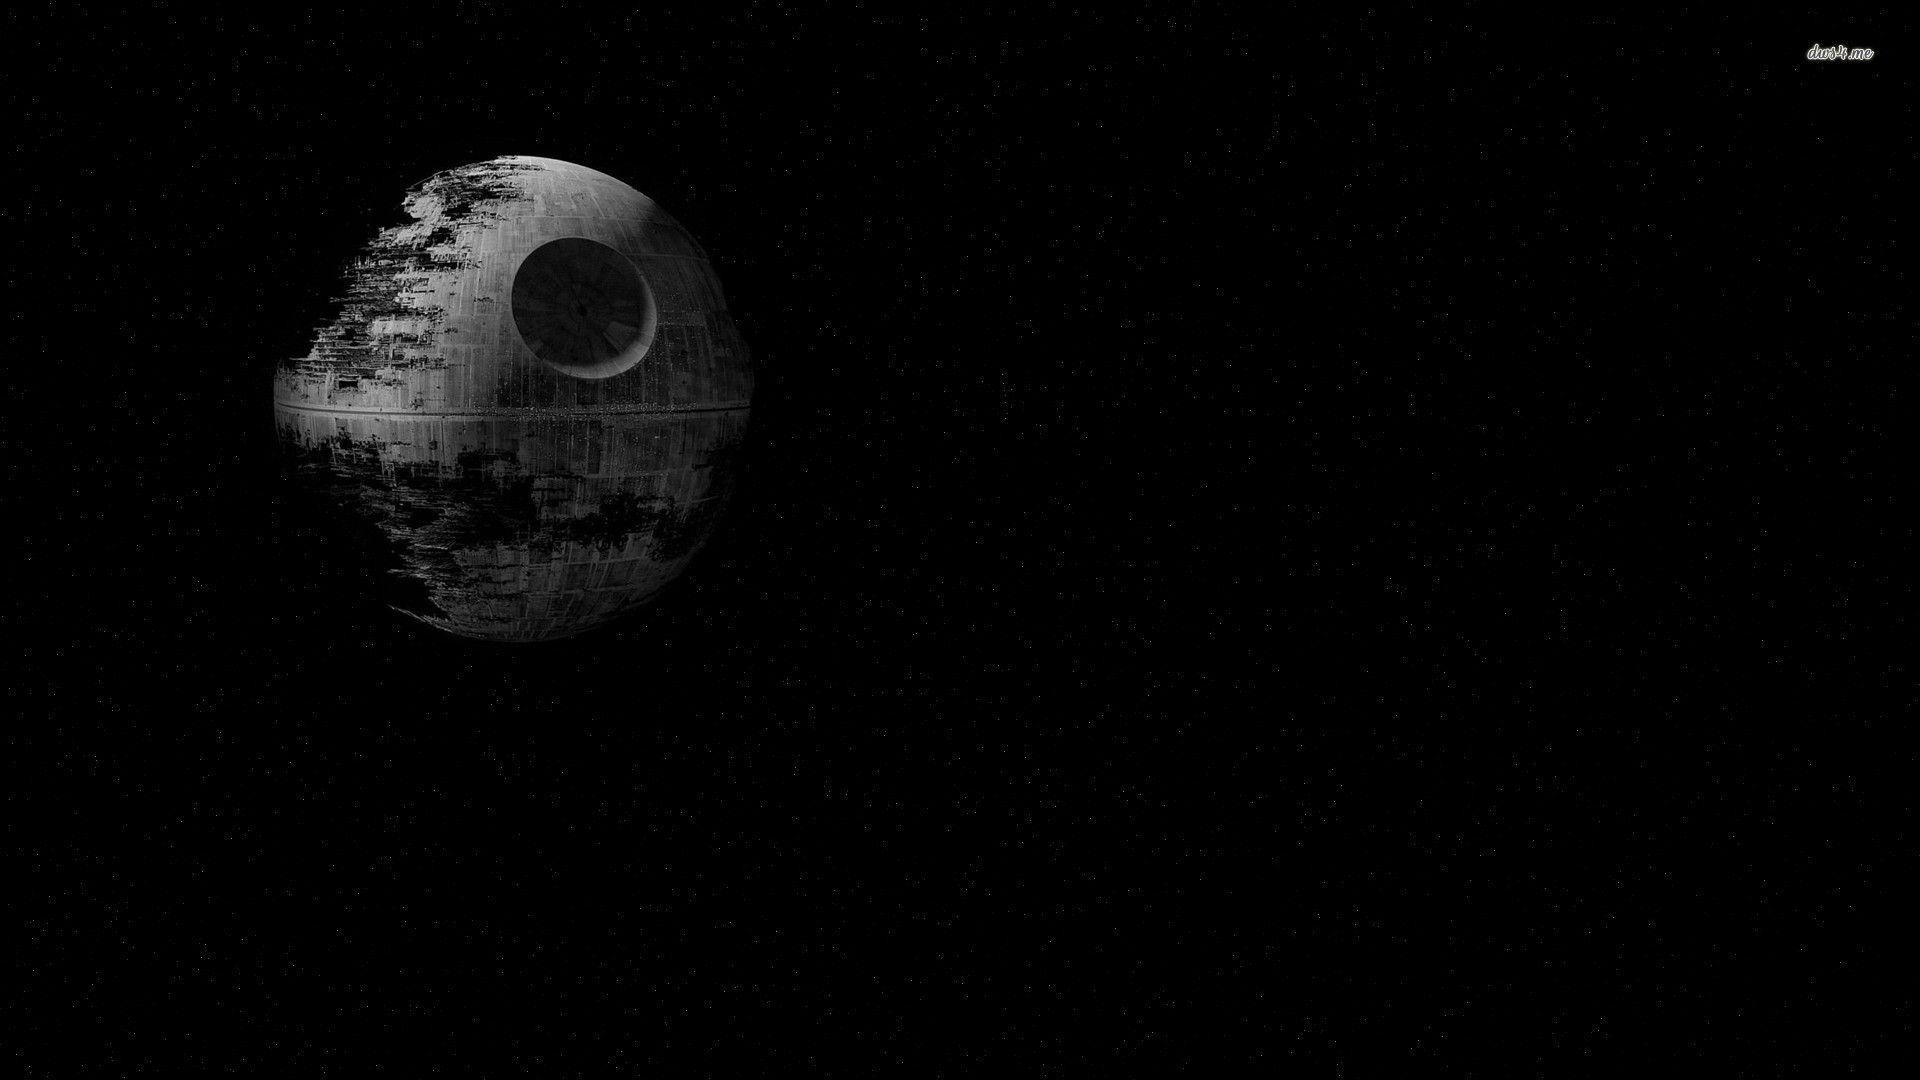 66+ death star wallpapers on wallpaperplay